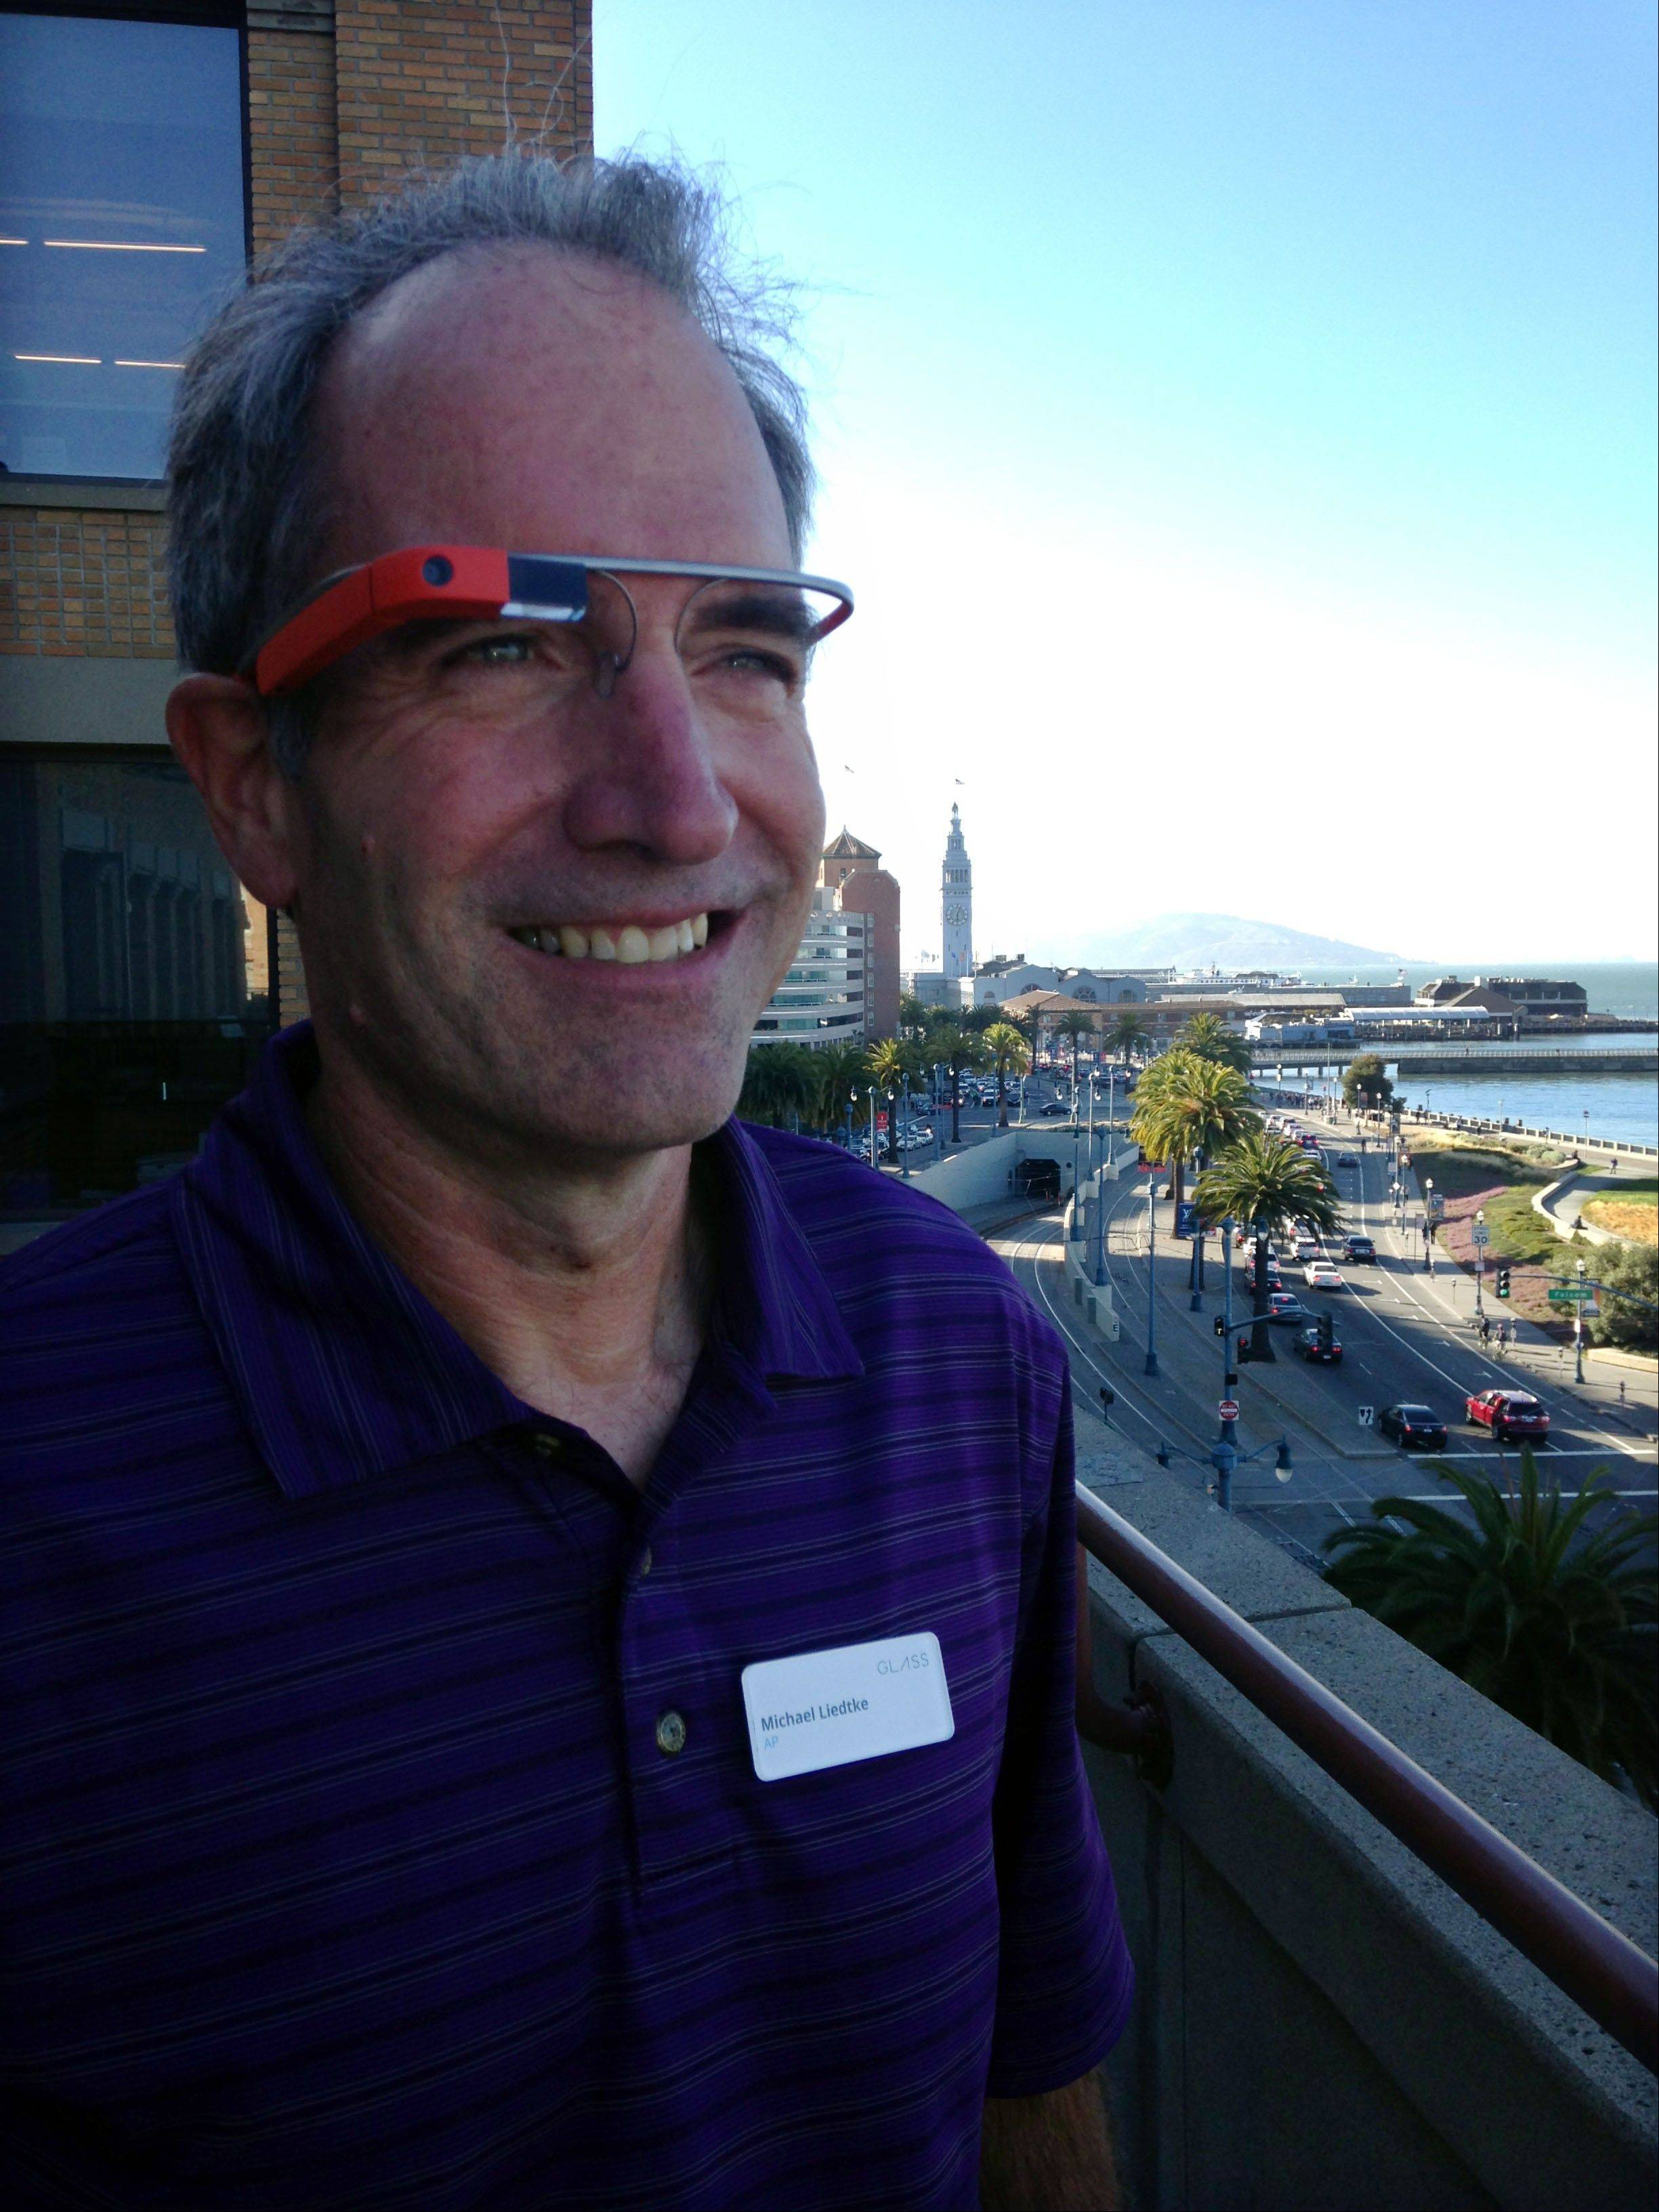 Associated Press reporter Michael Liedtke models Google glass at a Google base camp in San Francisco. Google Inc. is touting Glass as a liberating breakthrough that will make technology more convenient and less obnoxious in social situations than checking a smartphone to see what�s happening in your digital realm. Critics deride Glass as another disturbing example of a how enslaved people are to their devices and a sign that technology is obliterating personal privacy.